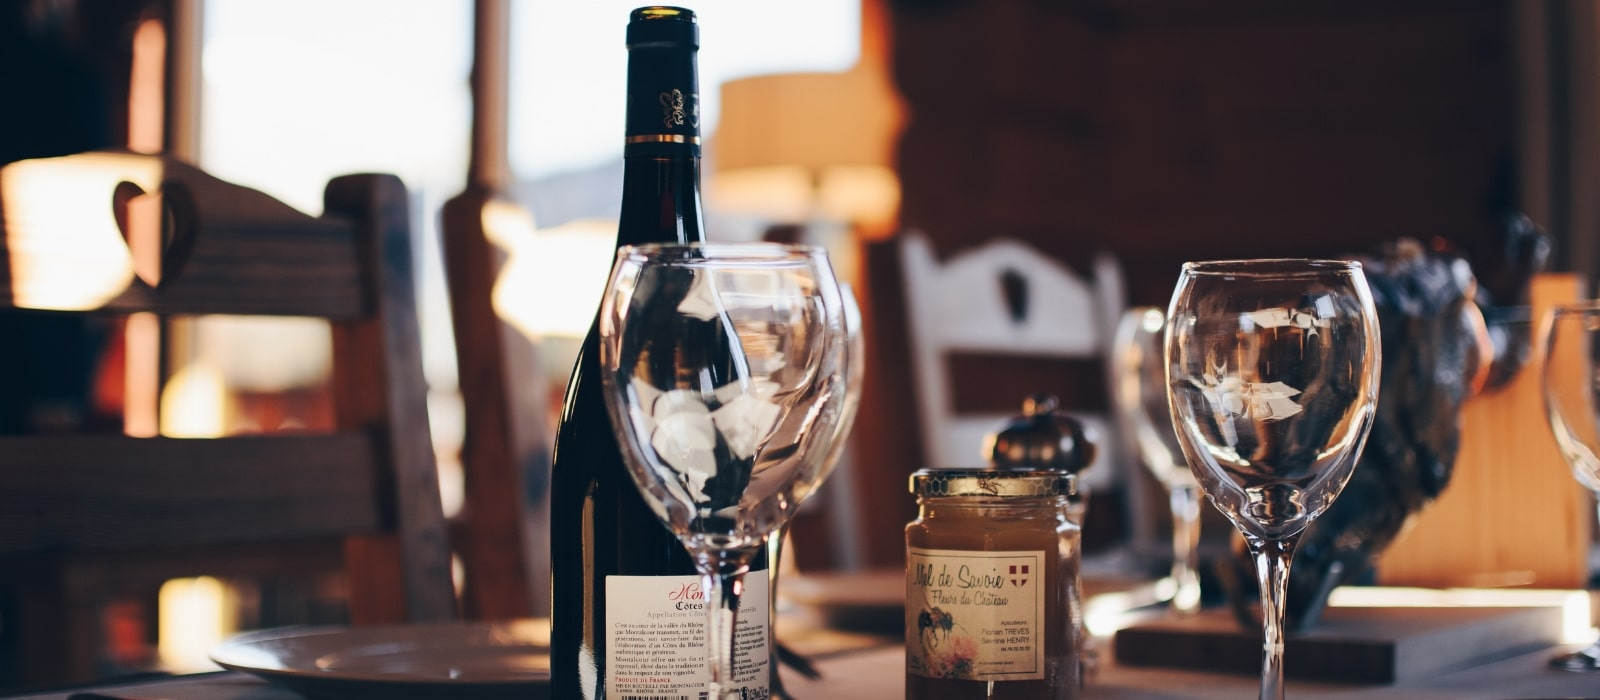 Different Types of Sweet Wine you will want to try|Types of Wine|Popular Types of Sweet Wine| Sweet Wines| Super Sweet Wines| #wine #sweetwine